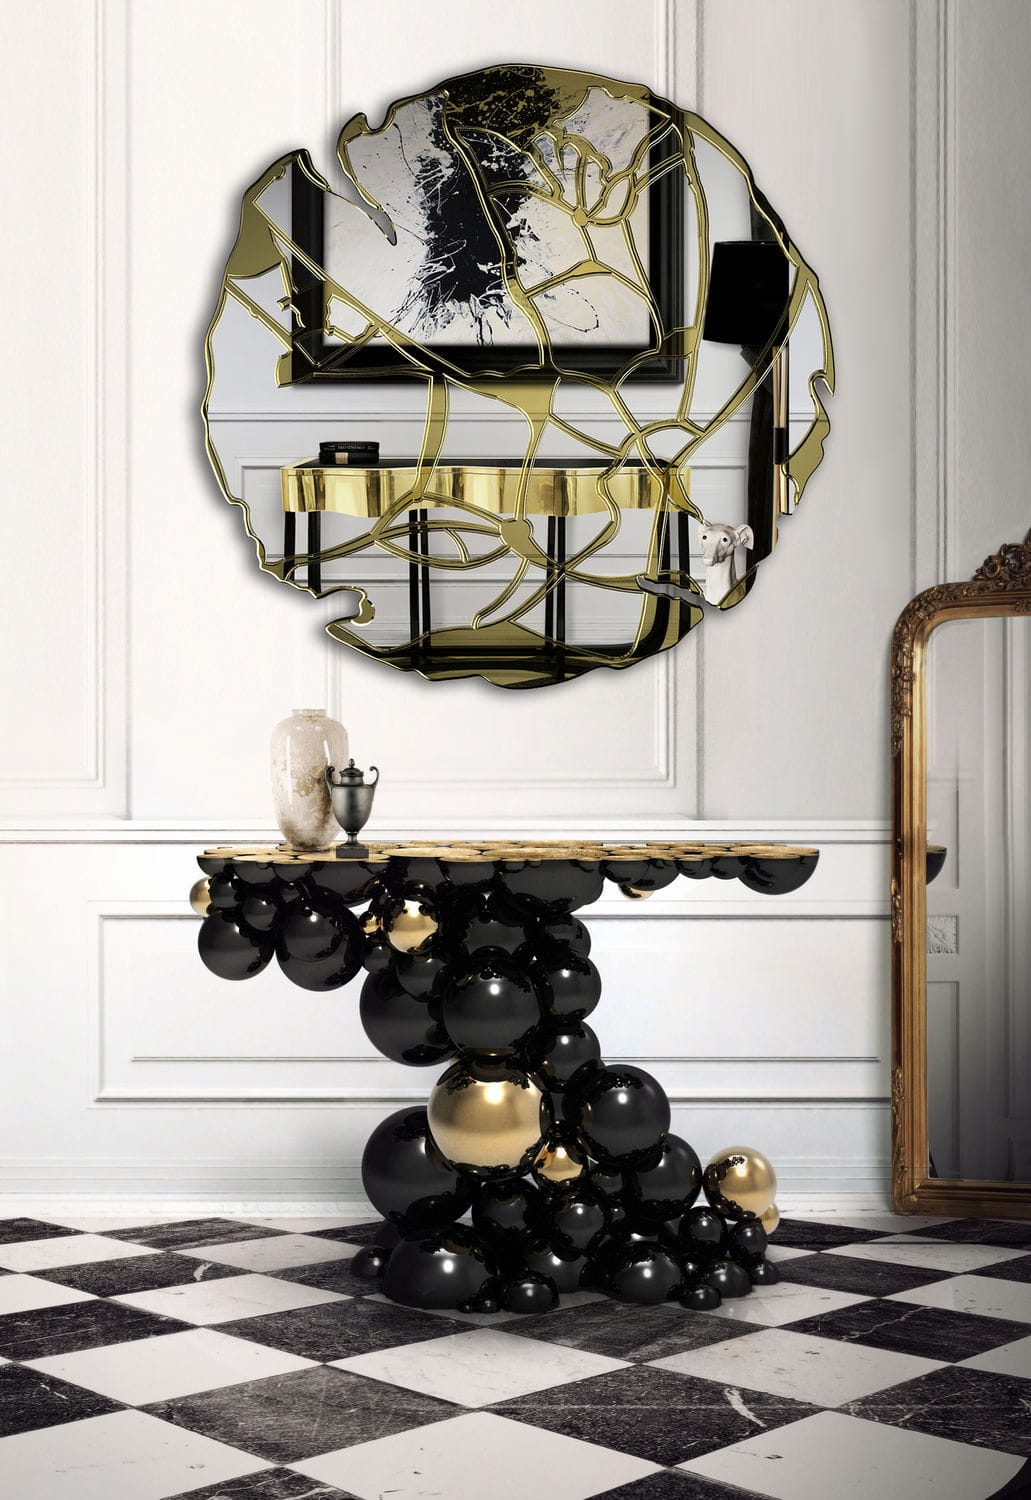 The Best Wall Mirror Designs That Will Be Perfect in Your Home Décor Wall Mirror Designs The Best Wall Mirror Designs That Will Be Perfect in Your Home Décor The Best Wall Mirror Designs That Will Be Perfect in Your Home D  cor5